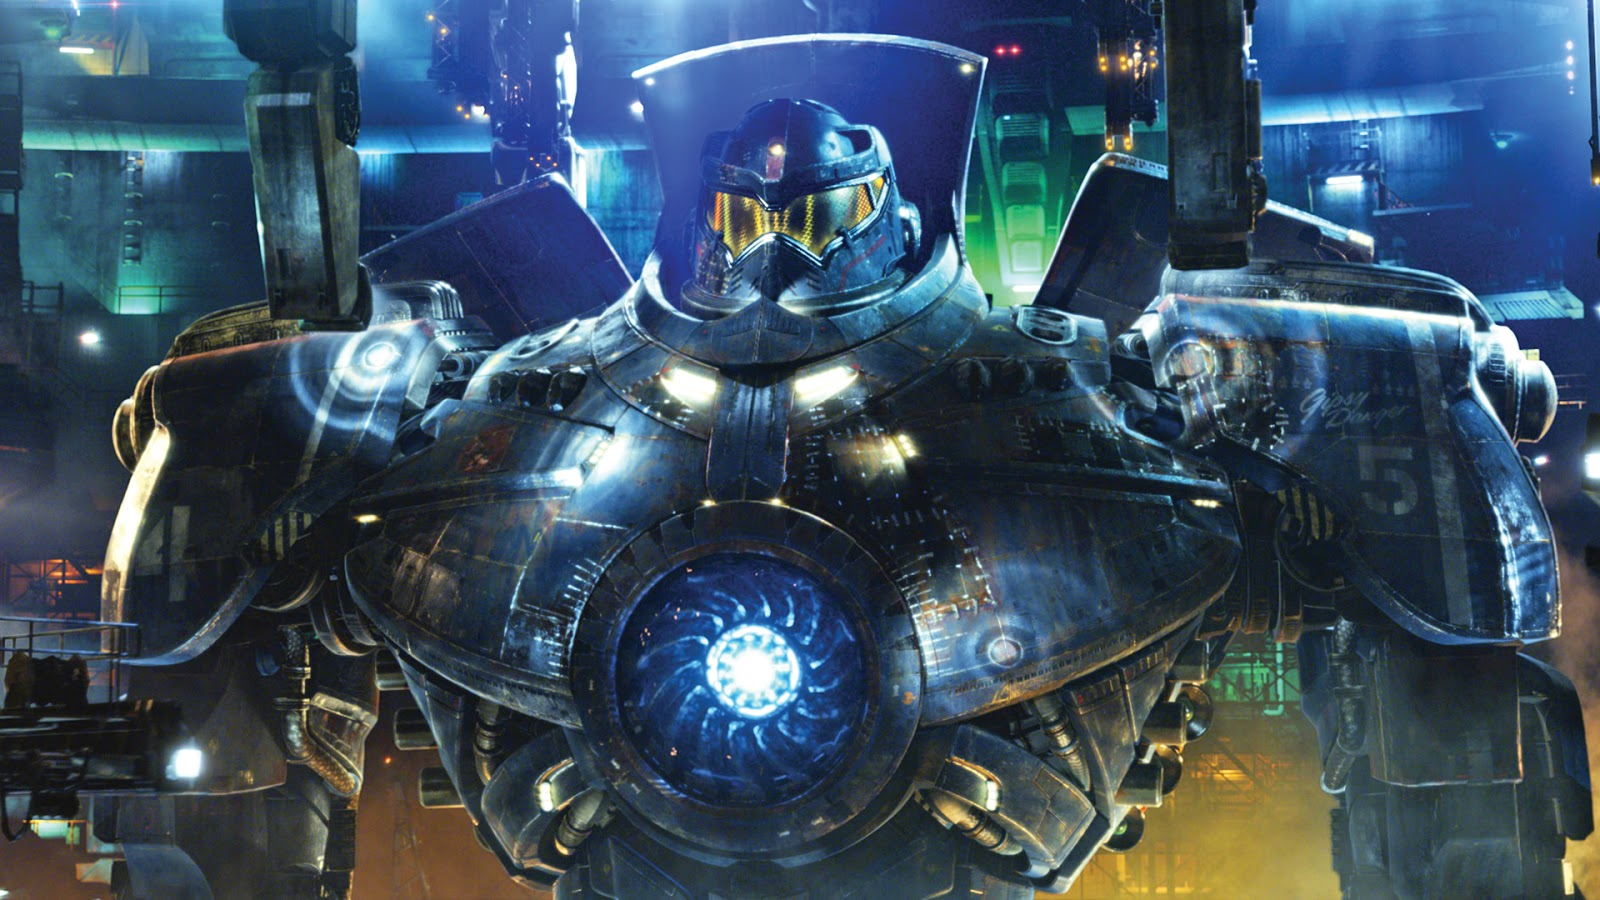 Pacific rim gypsy danger art Wallpaper HD Wallpapers - pacific rim gypsy danger art wallpapers